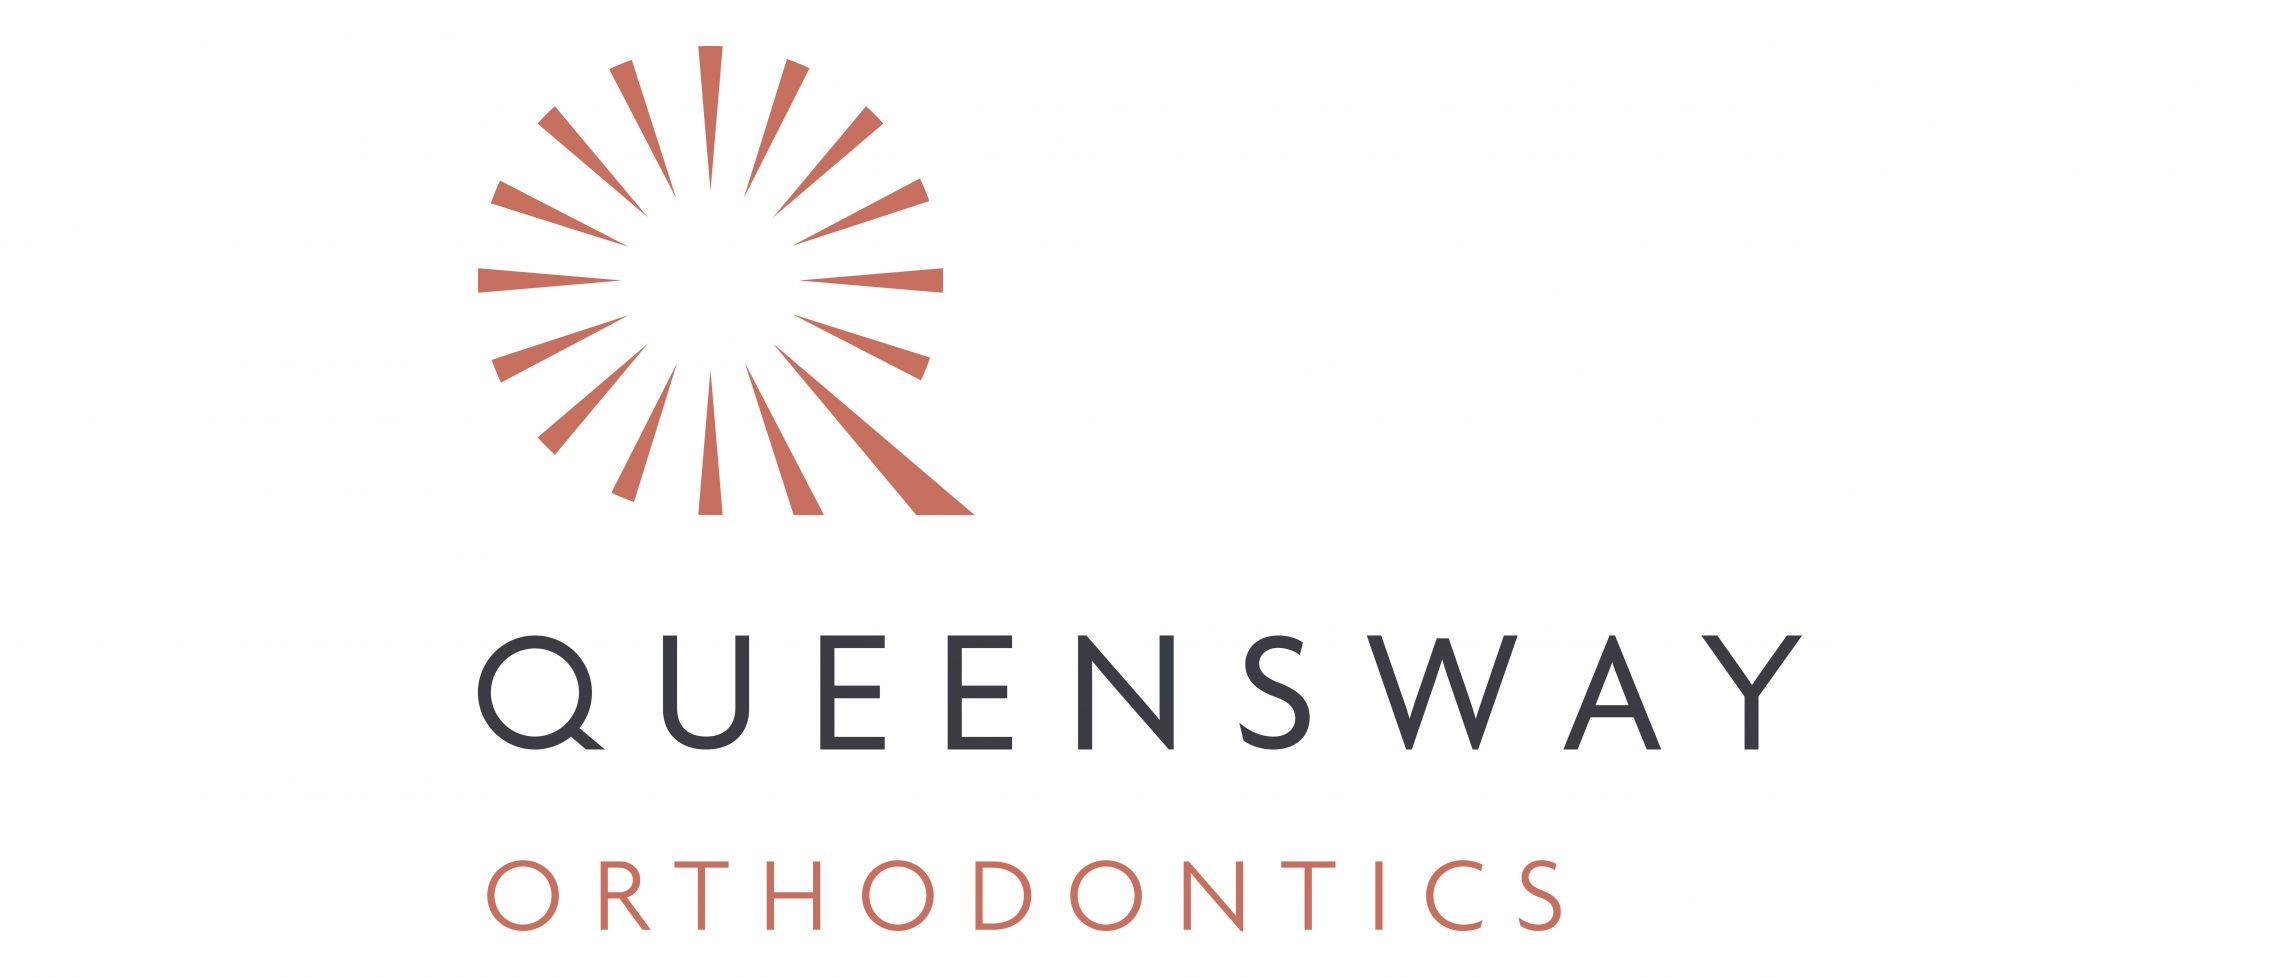 Queensway Orthodontics